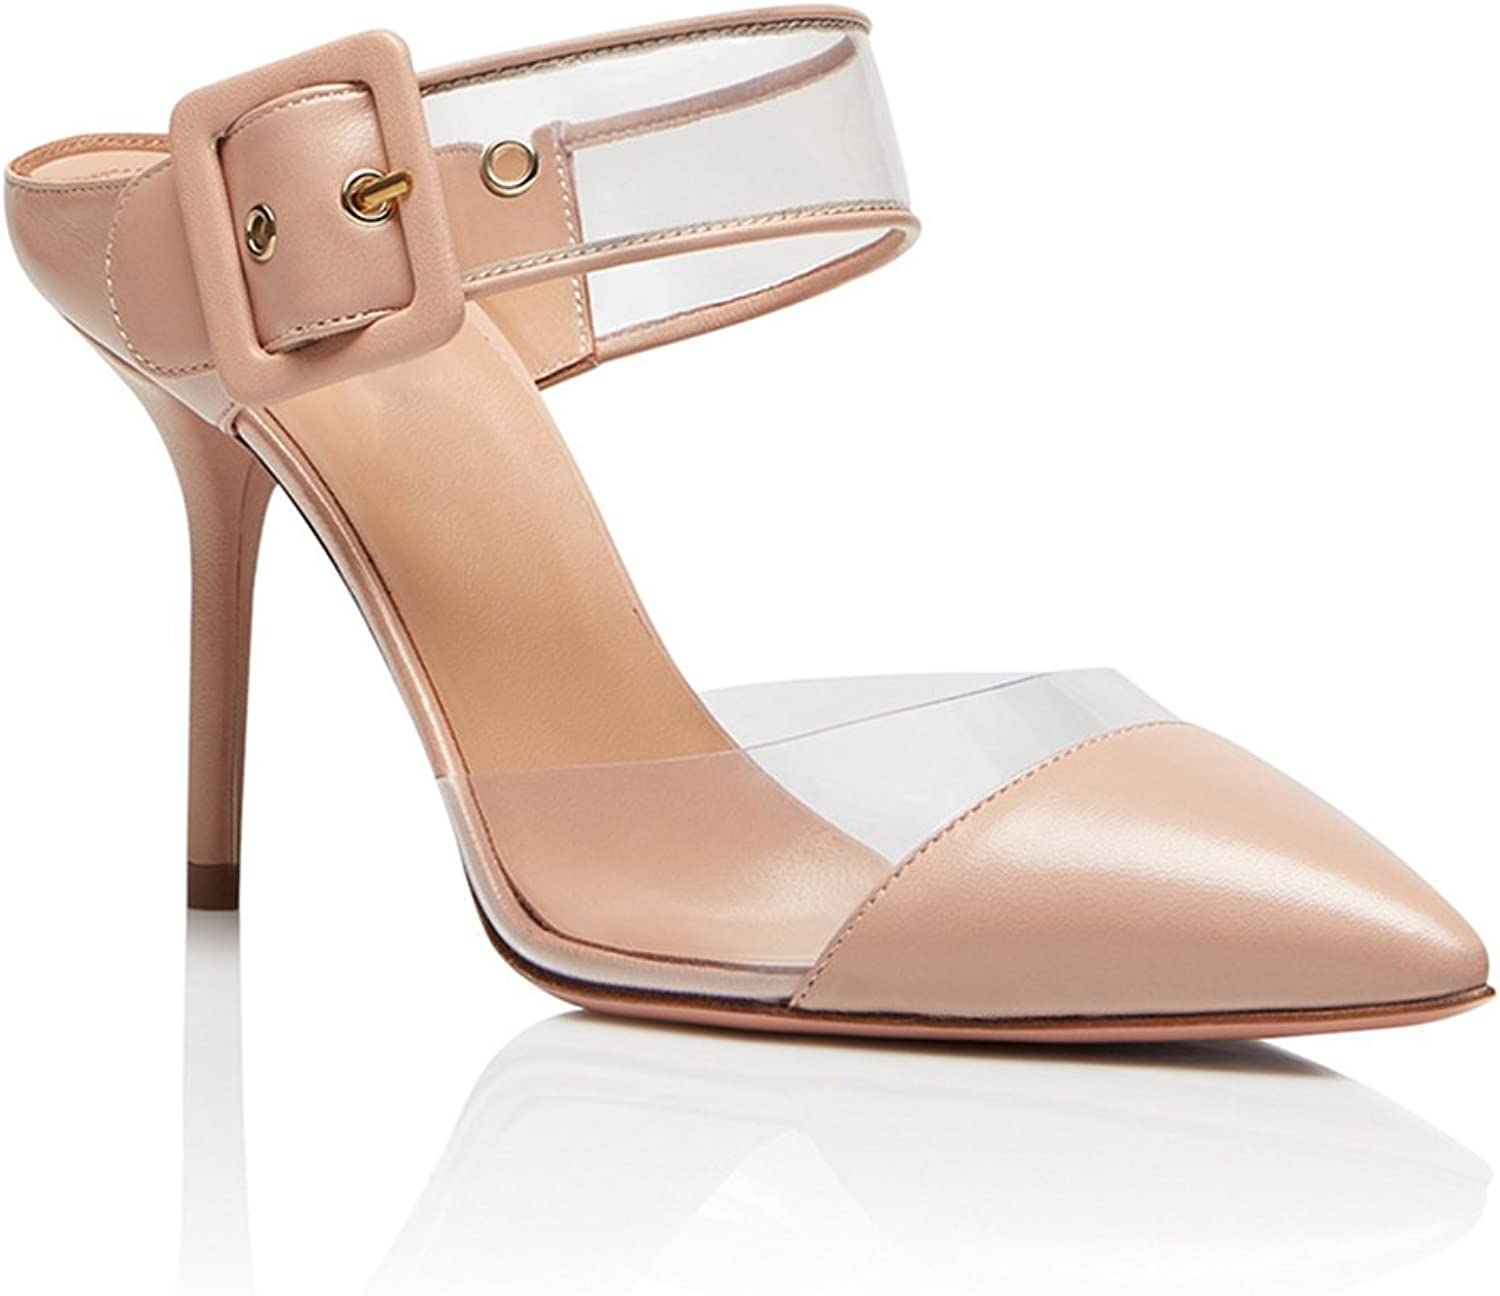 Women's PVC High Heel Pointed Fashion Sandals Transparent Sandals Back shoes Low shoes Cross Strap(Heel Height  11-13cm)